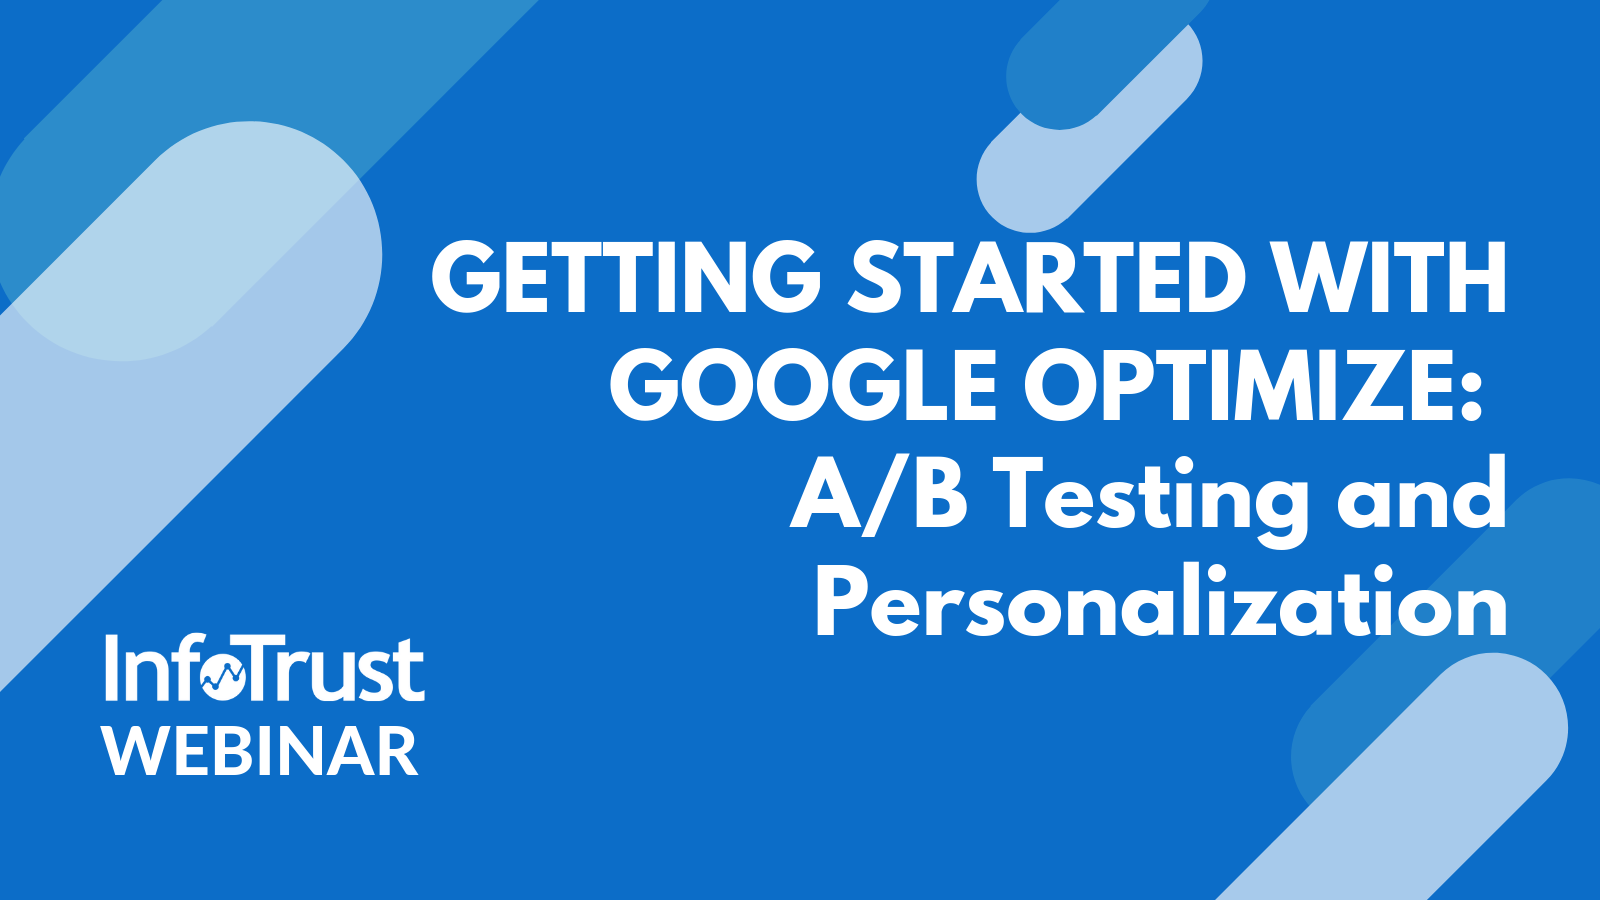 Getting Started with Google Optimize: A/B Testing and Personalization